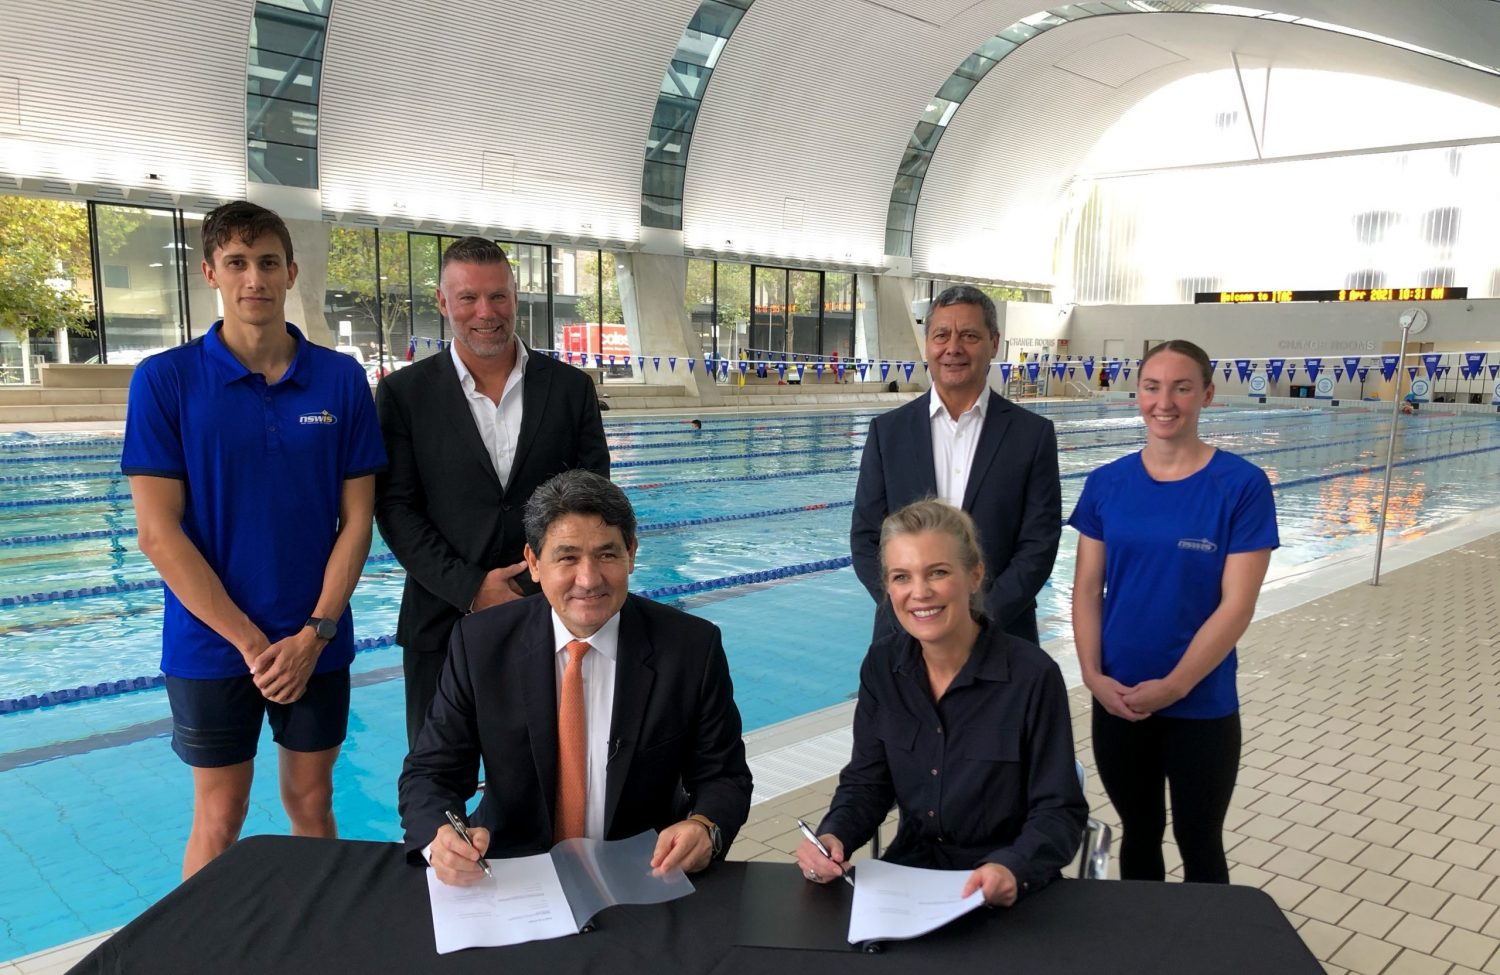 TAFE NSW partners with Australian Institute of Sport Image